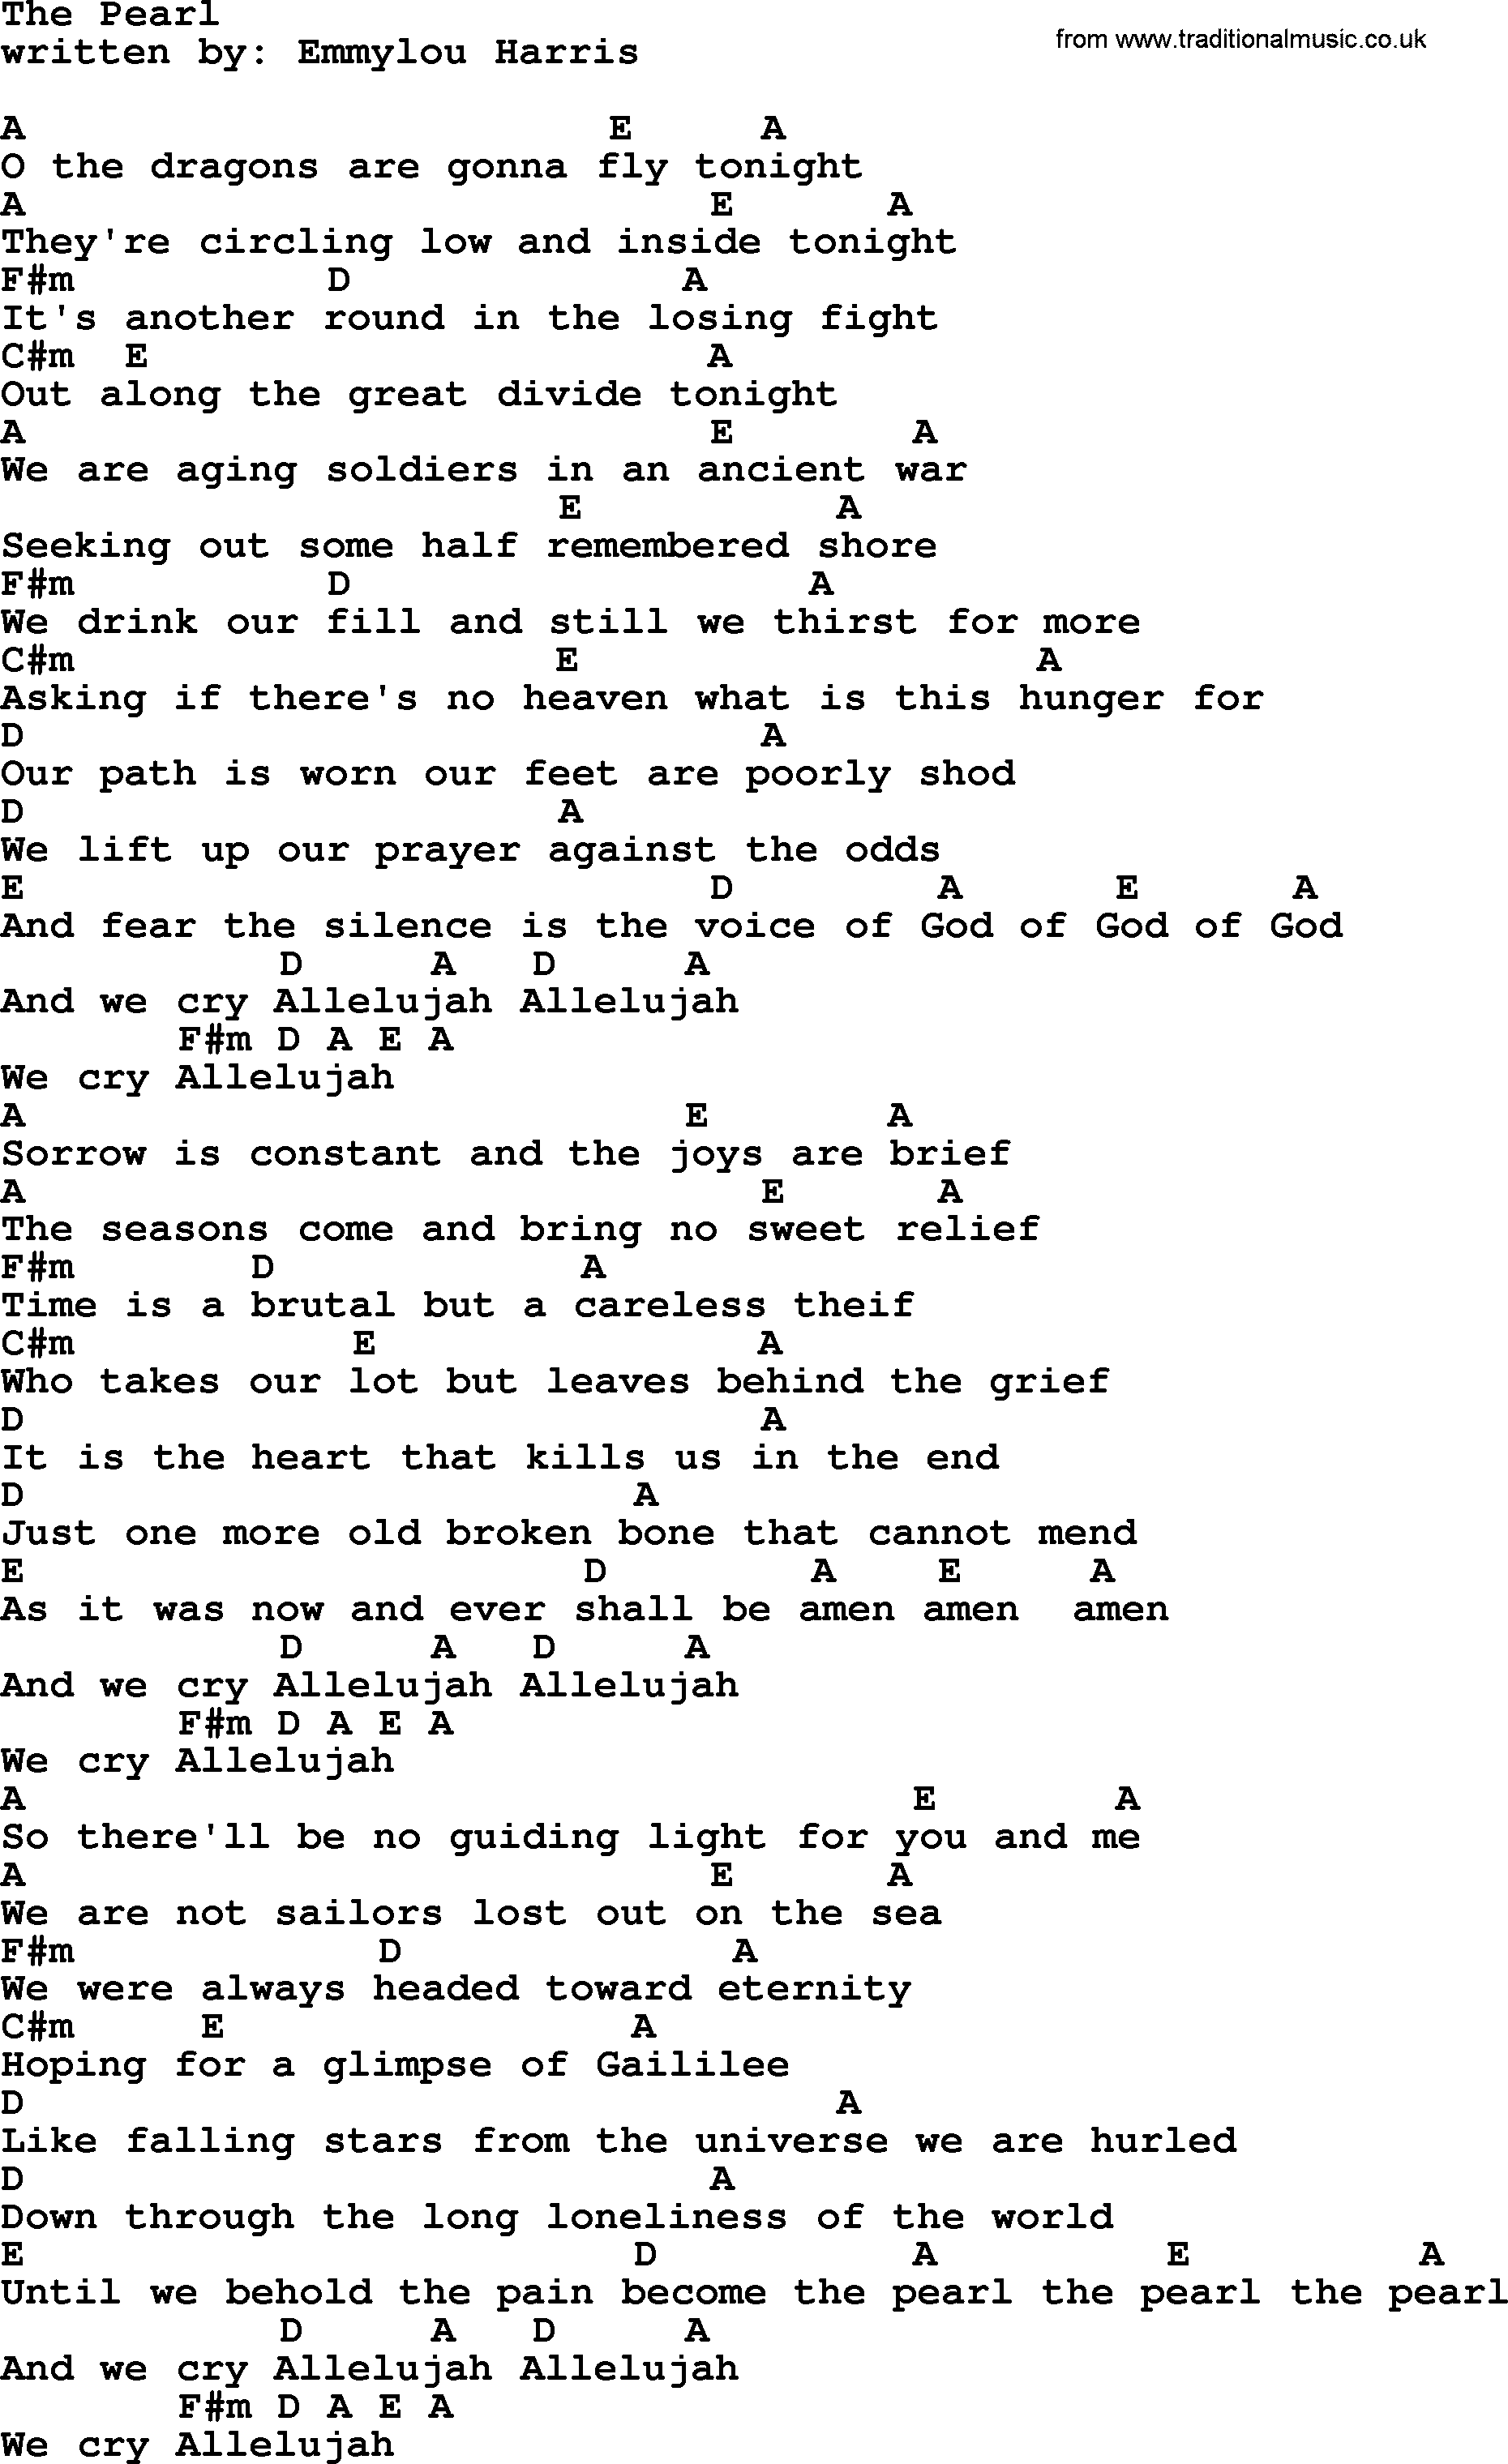 Emmylou Harris Song The Pearl Lyrics And Chords